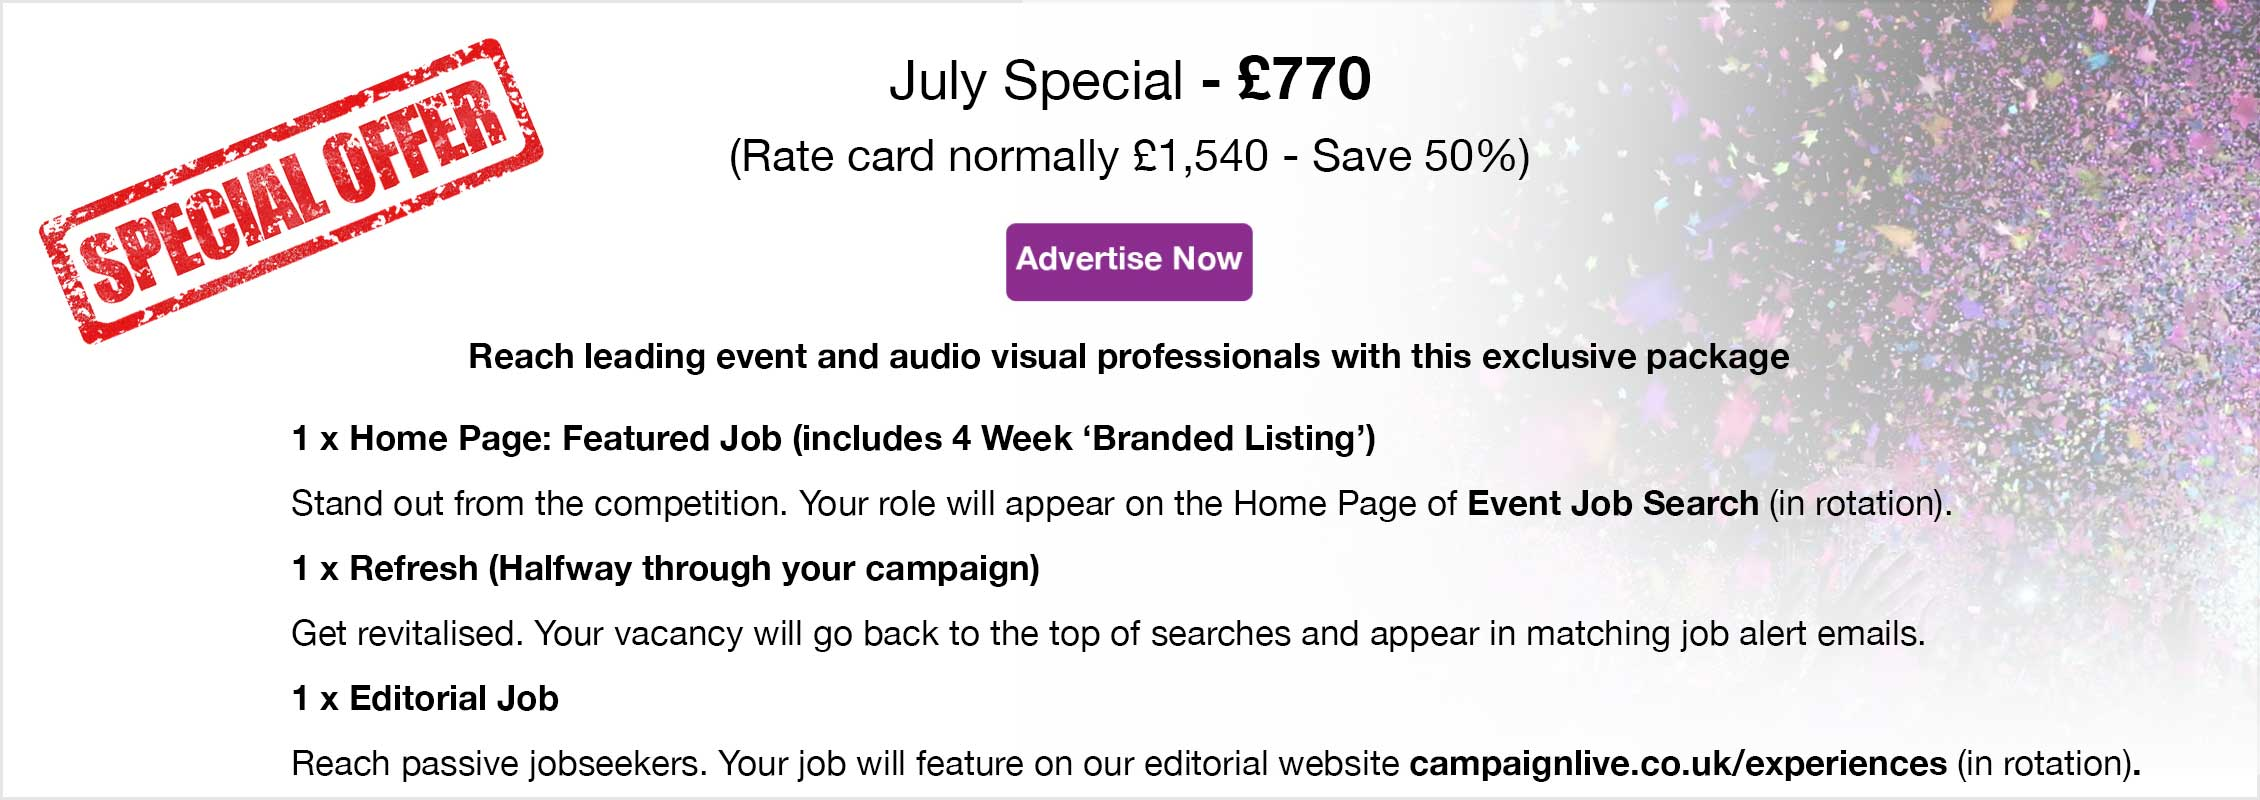 Special Offer. July Special - £770 (Rate card normally £1,540 - Save 50%). Advertise Now. Reach leading event and audio visual professionals with this exclusive package. 